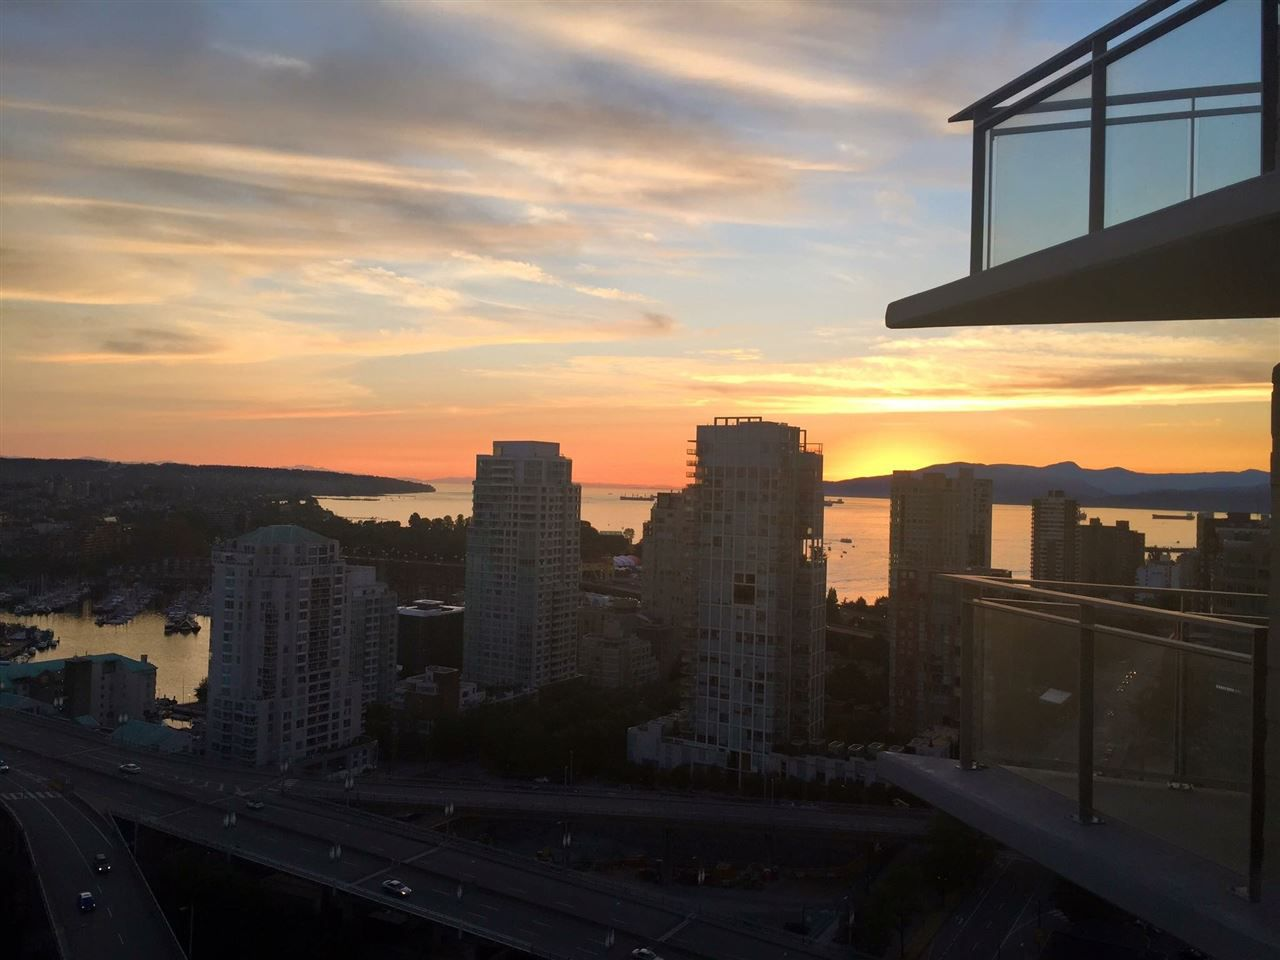 """Main Photo: 2608 1372 SEYMOUR Street in Vancouver: Downtown VW Condo for sale in """"The Mark"""" (Vancouver West)  : MLS®# R2031364"""